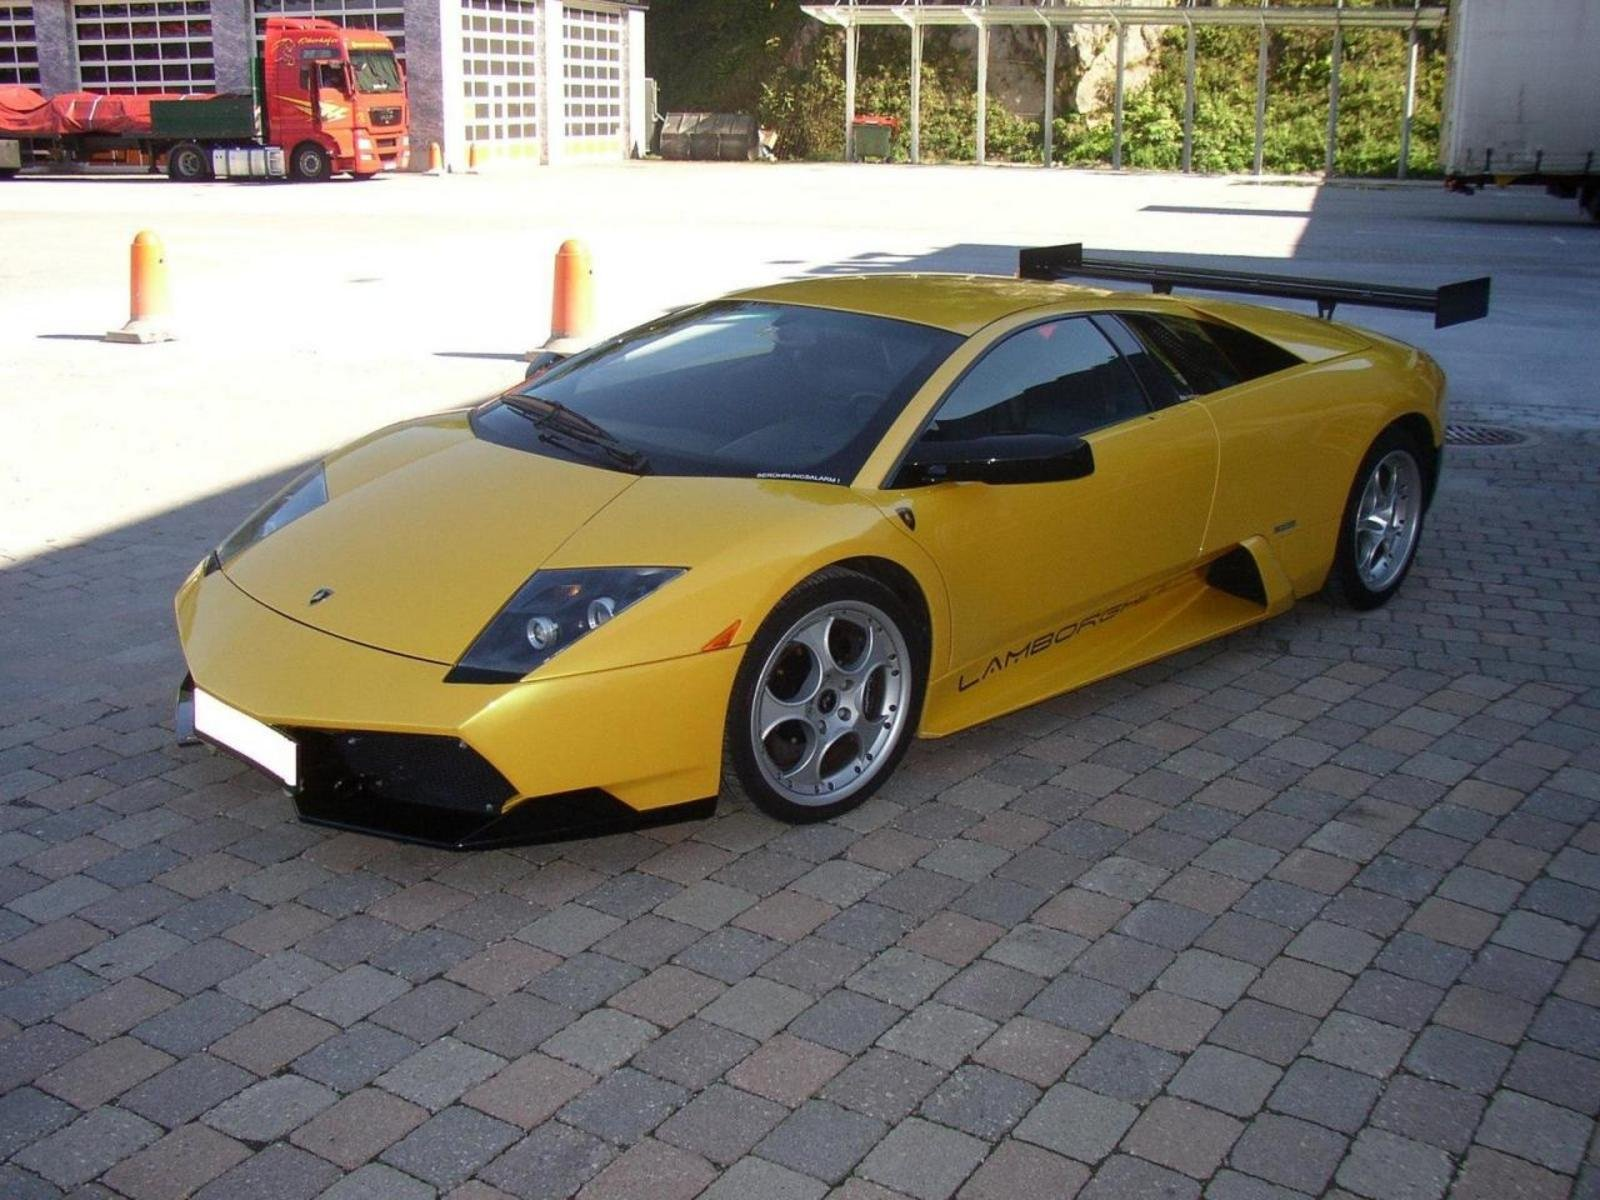 2001 2010 lamborghini murcielago sv by dmc review top speed. Black Bedroom Furniture Sets. Home Design Ideas